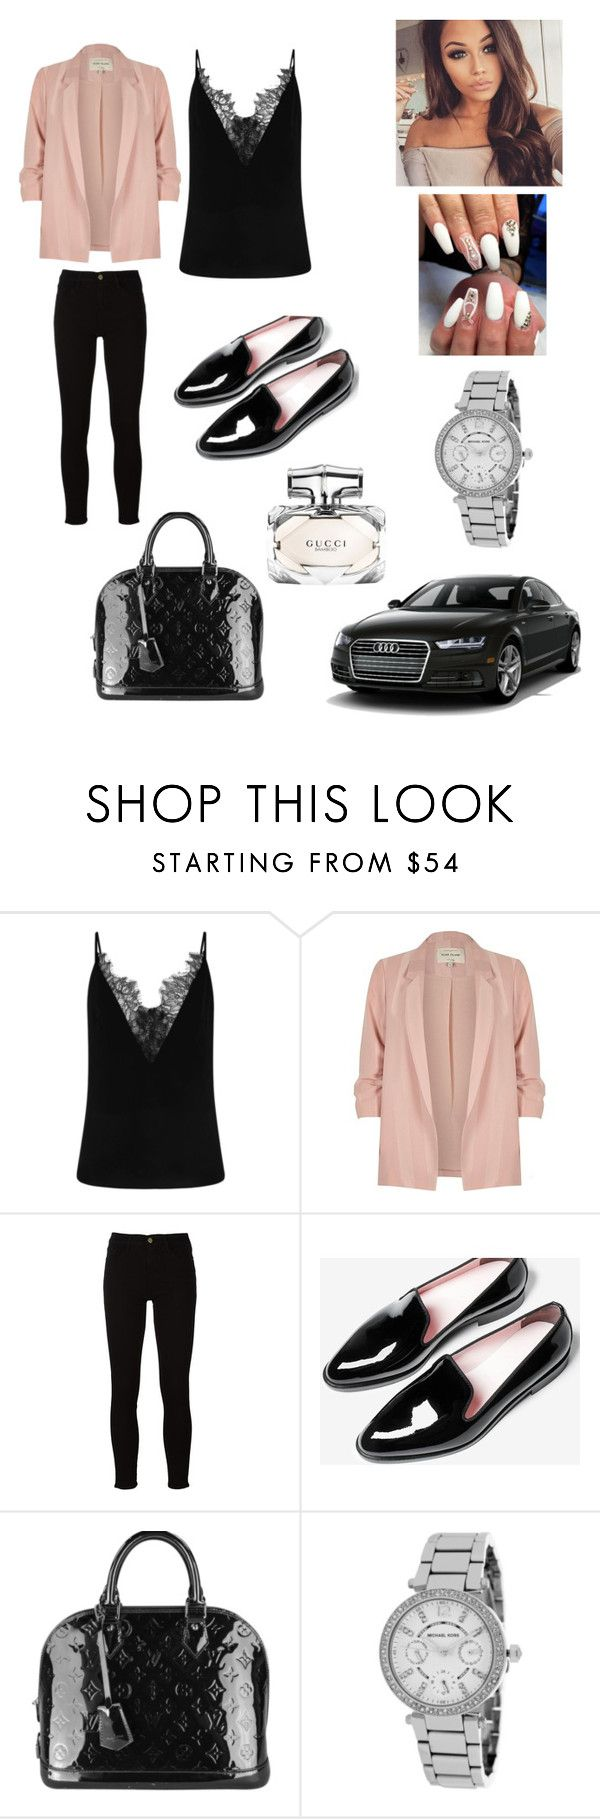 """Costa cafe"" by vs-closet ❤ liked on Polyvore featuring River Island, Frame, Louis Vuitton, Michael Kors and Gucci"